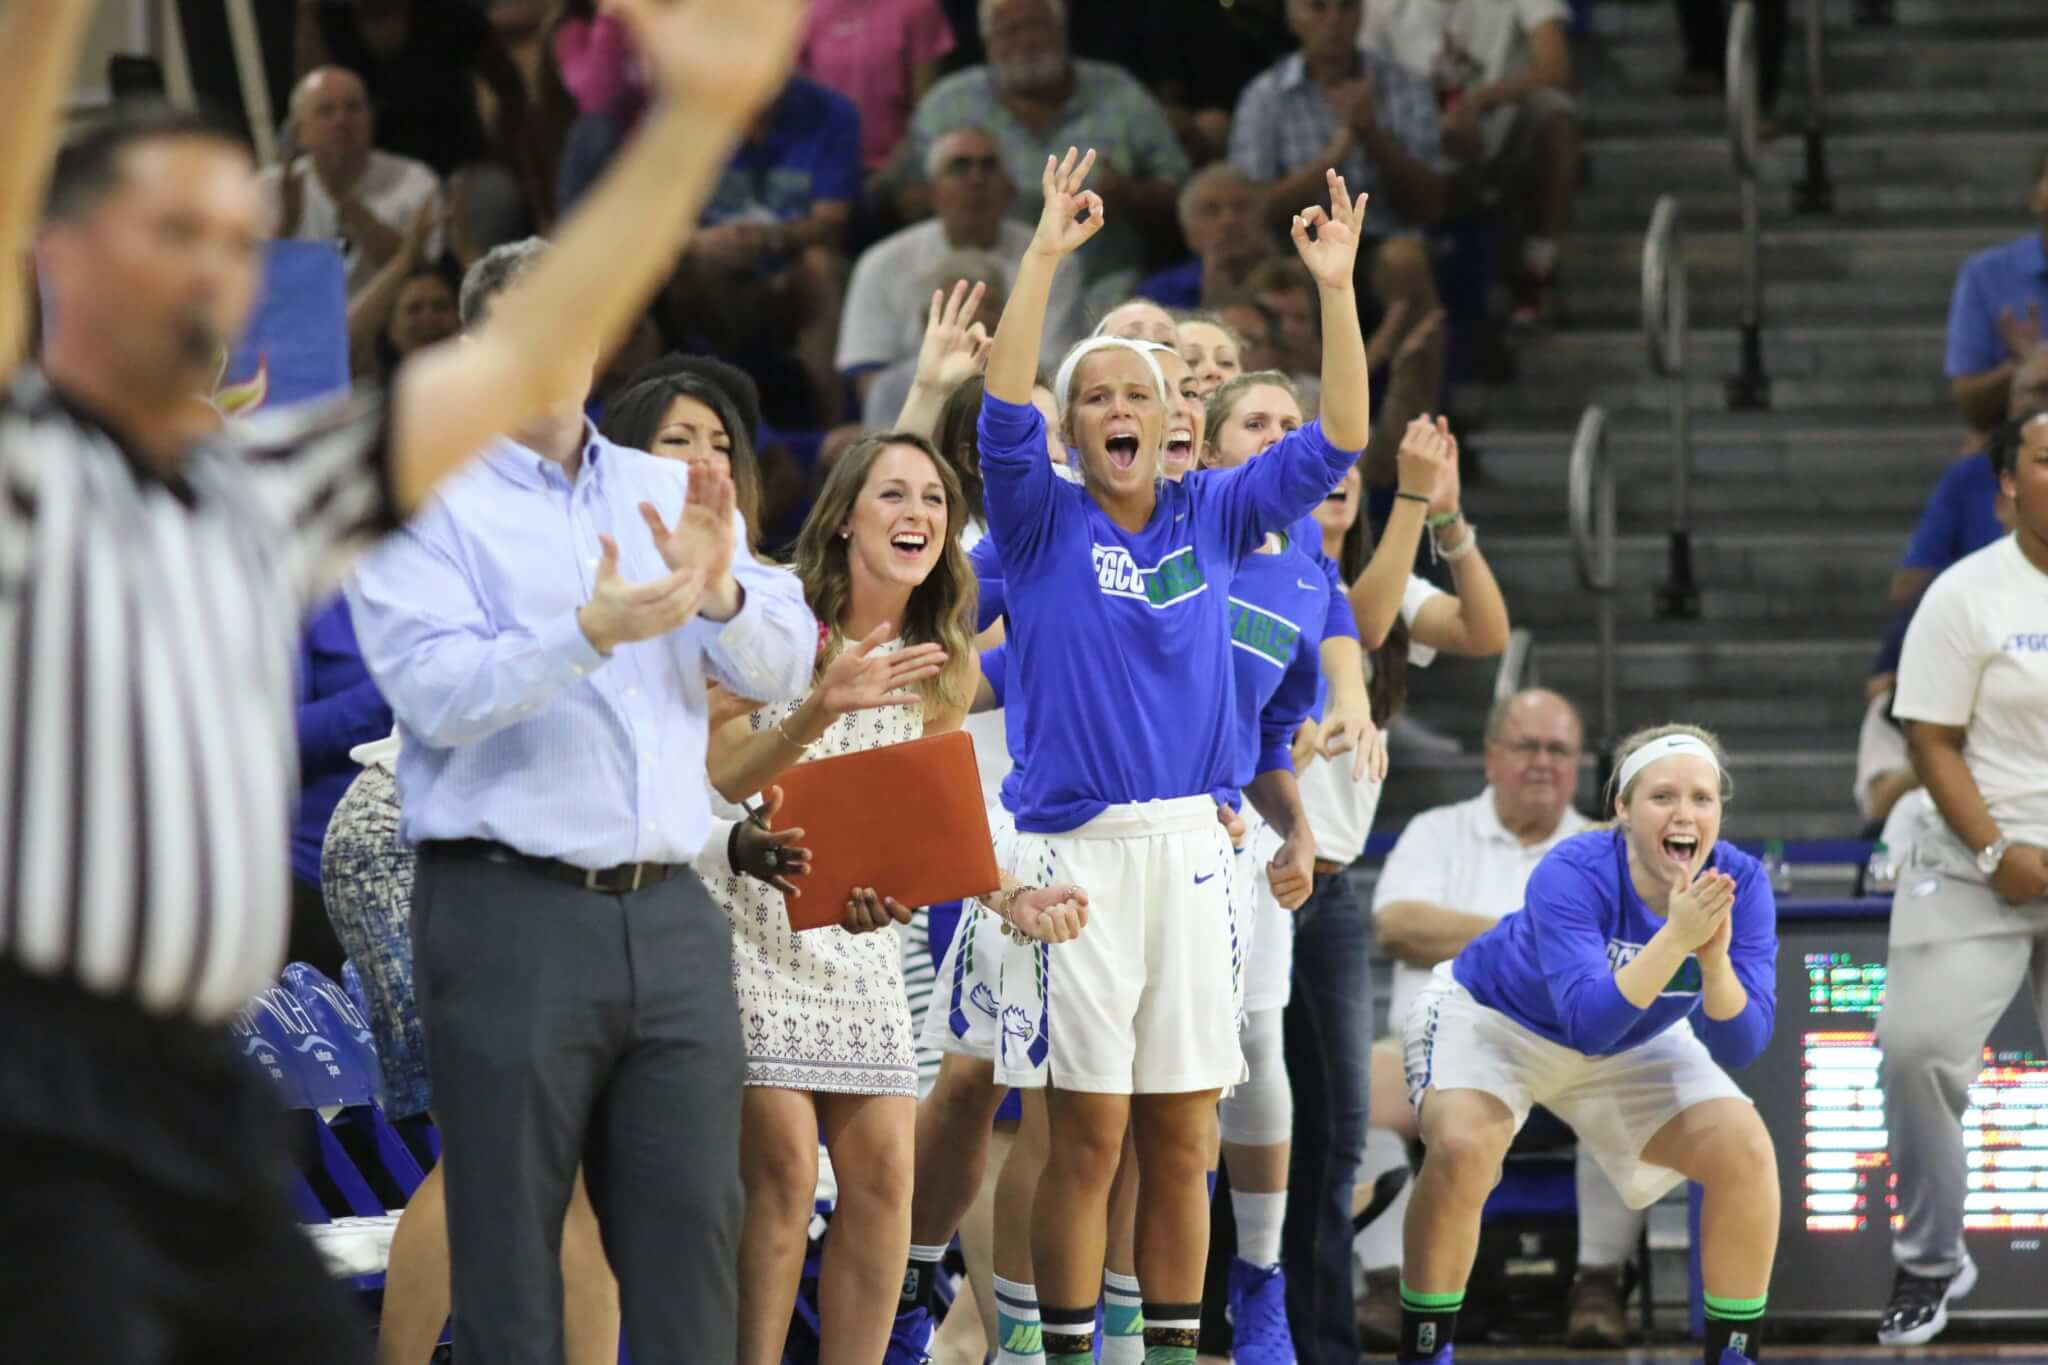 FGCU to host Bethune-Cookman in first round of the WNIT